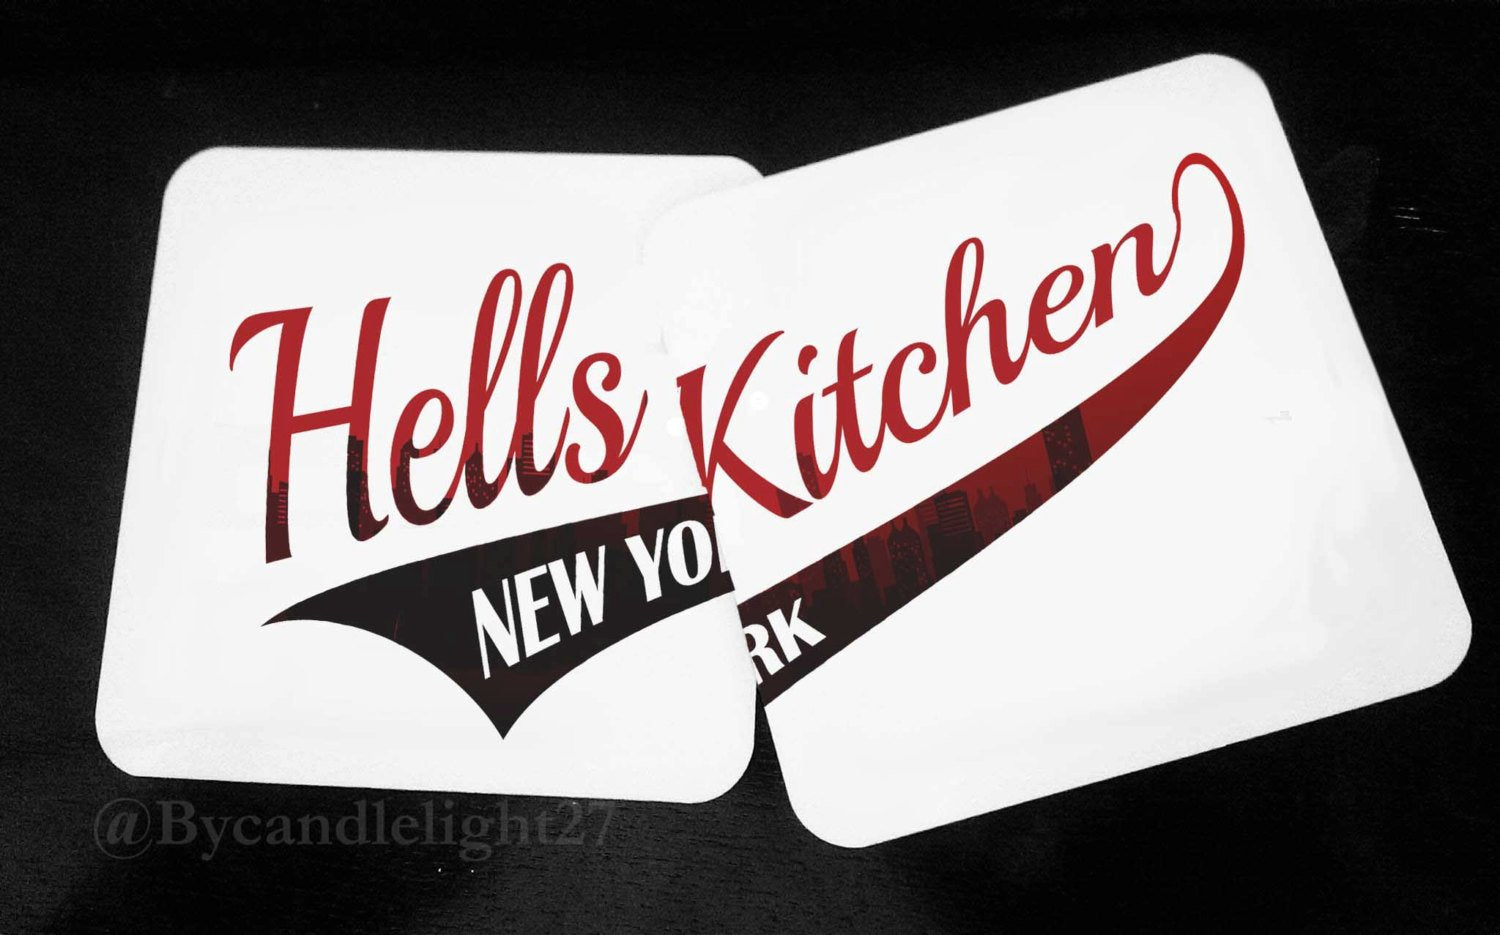 Hell's Kitchen - New York - Daredevil - Hardwood Coasters - ByCandlelight27